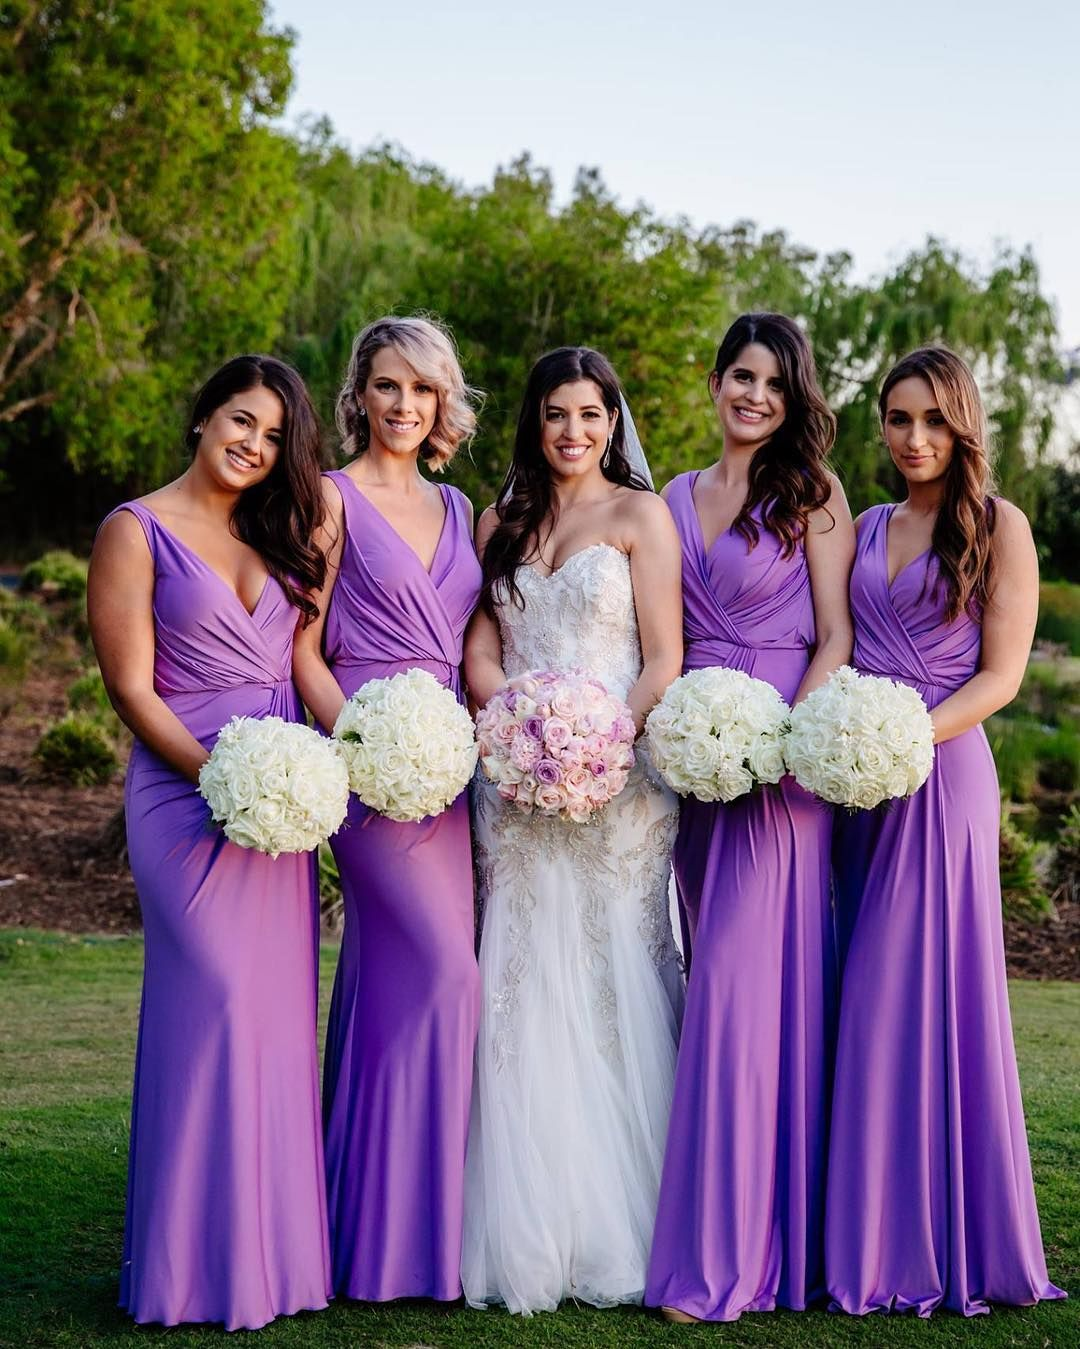 Bridgette Dress Wedding Bridesmaid Dresses Purple Bridesmaid